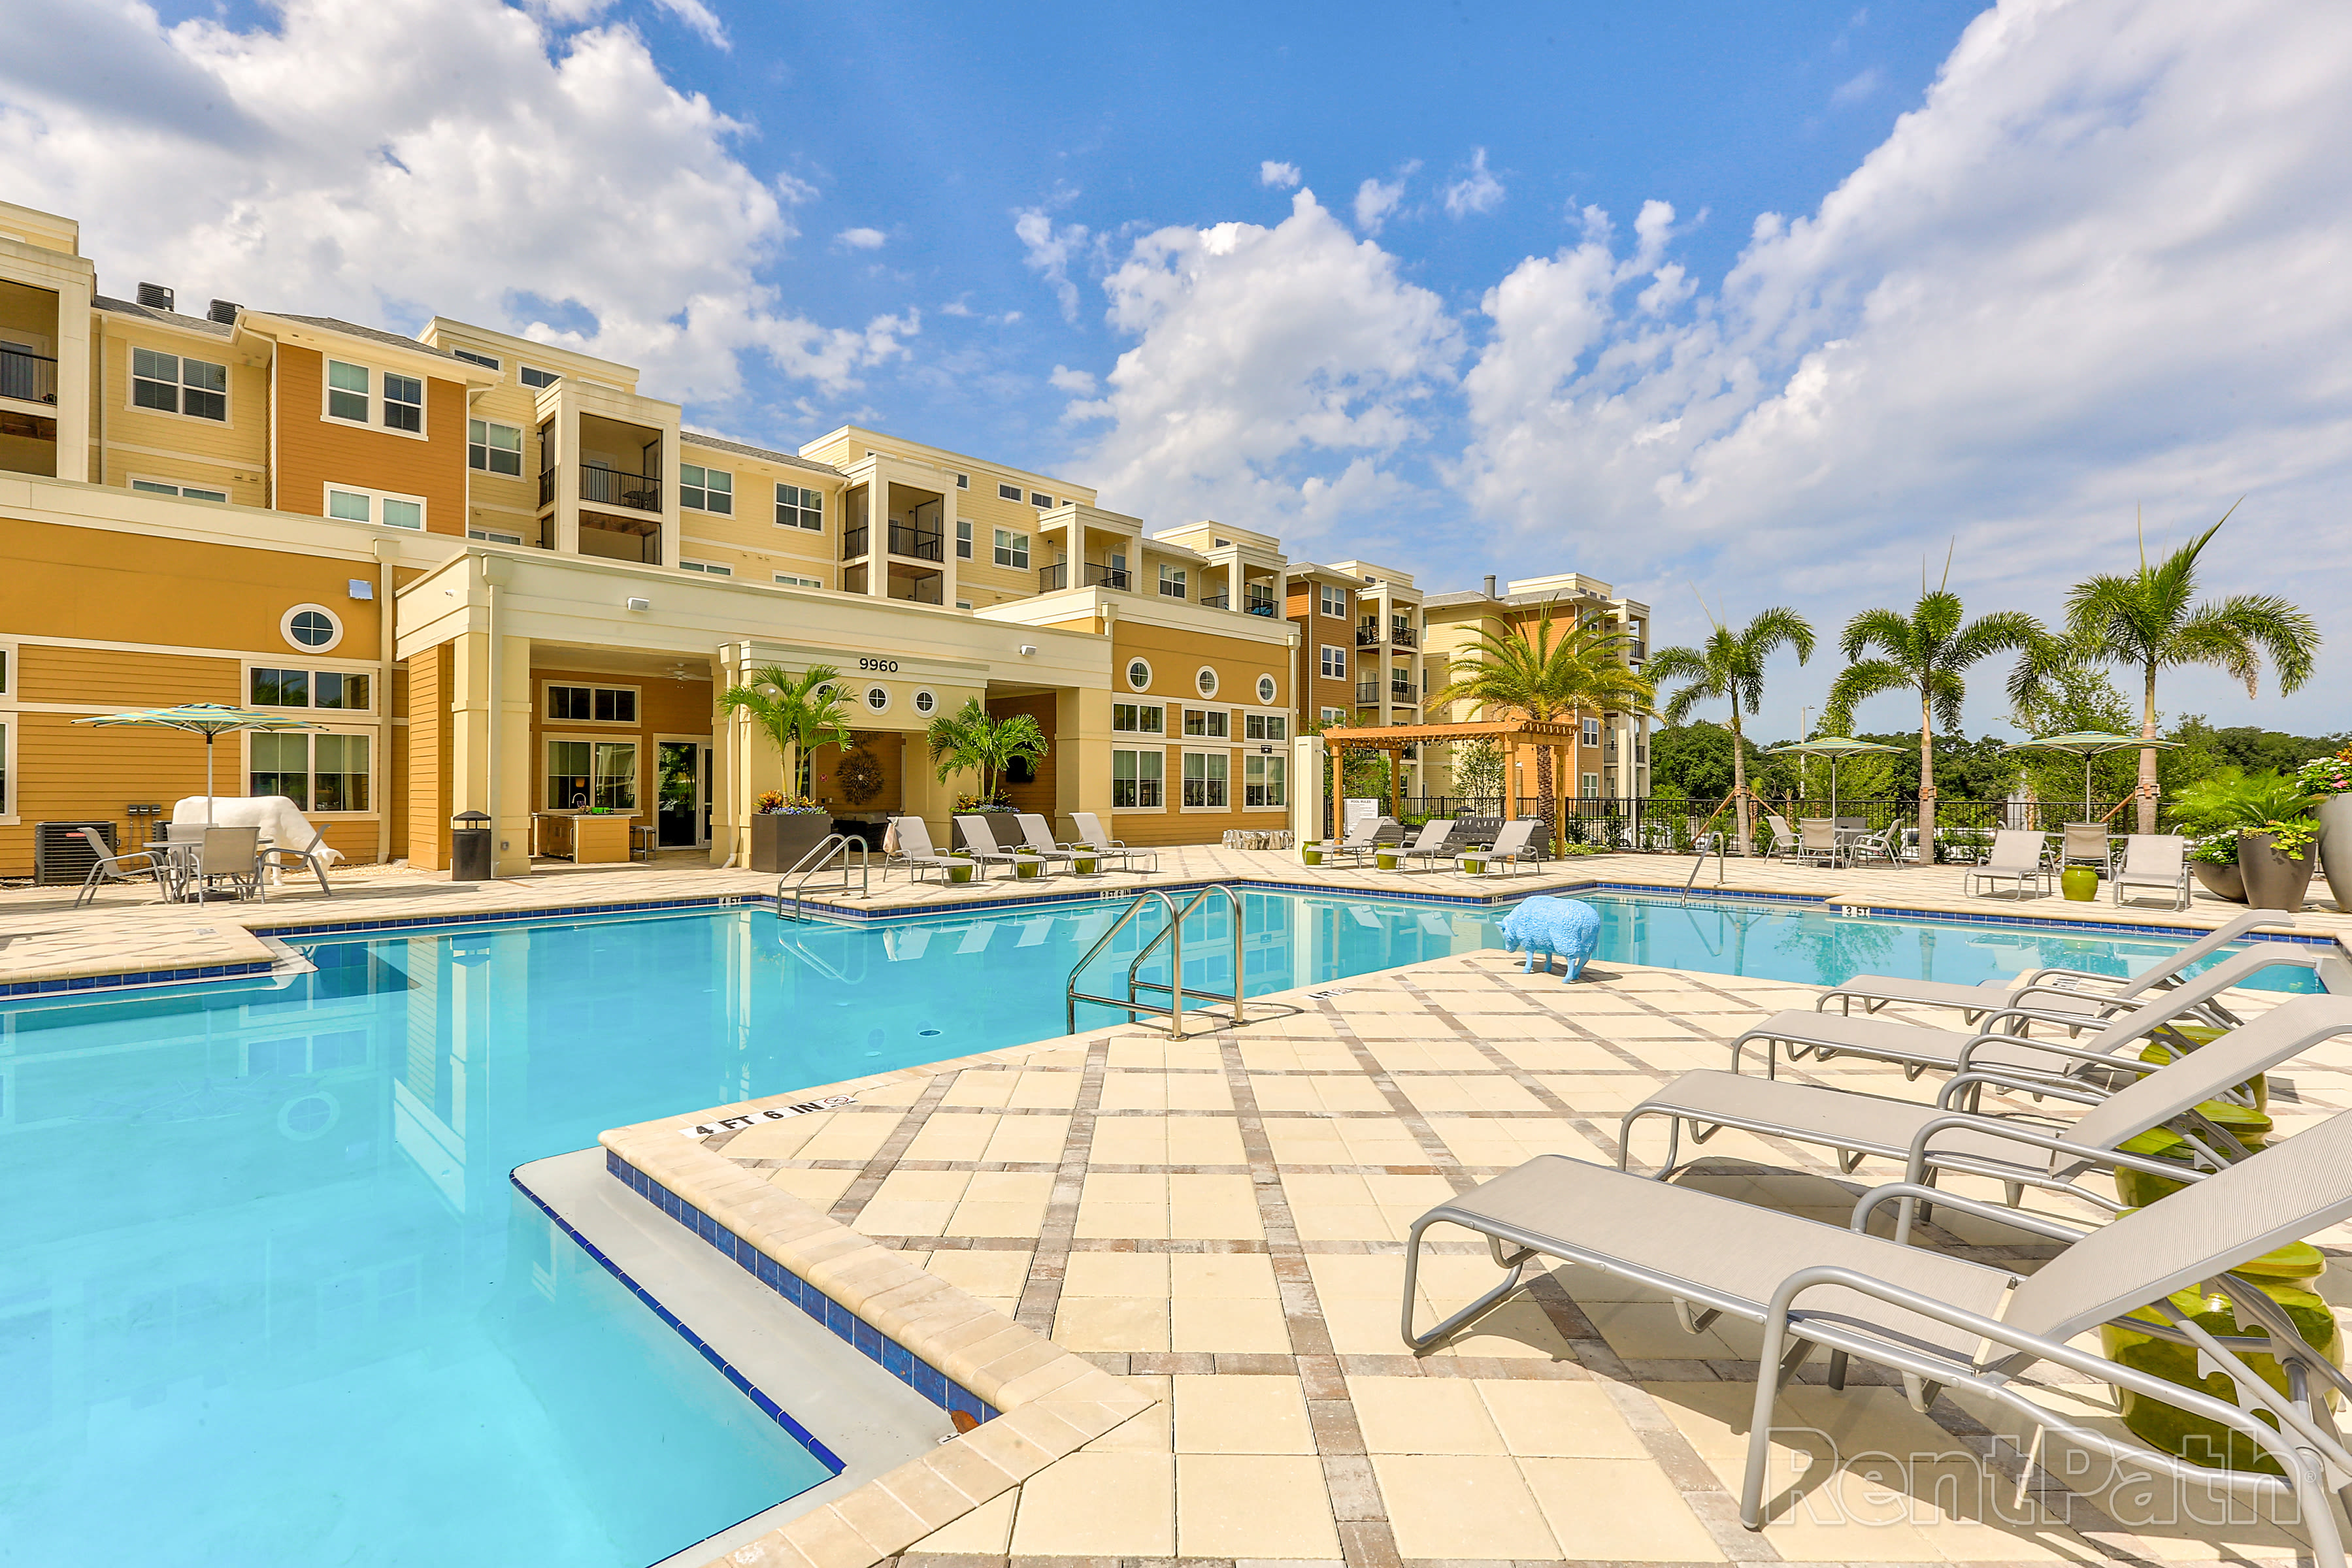 Pool at Lola Apartments in Riverview, FL